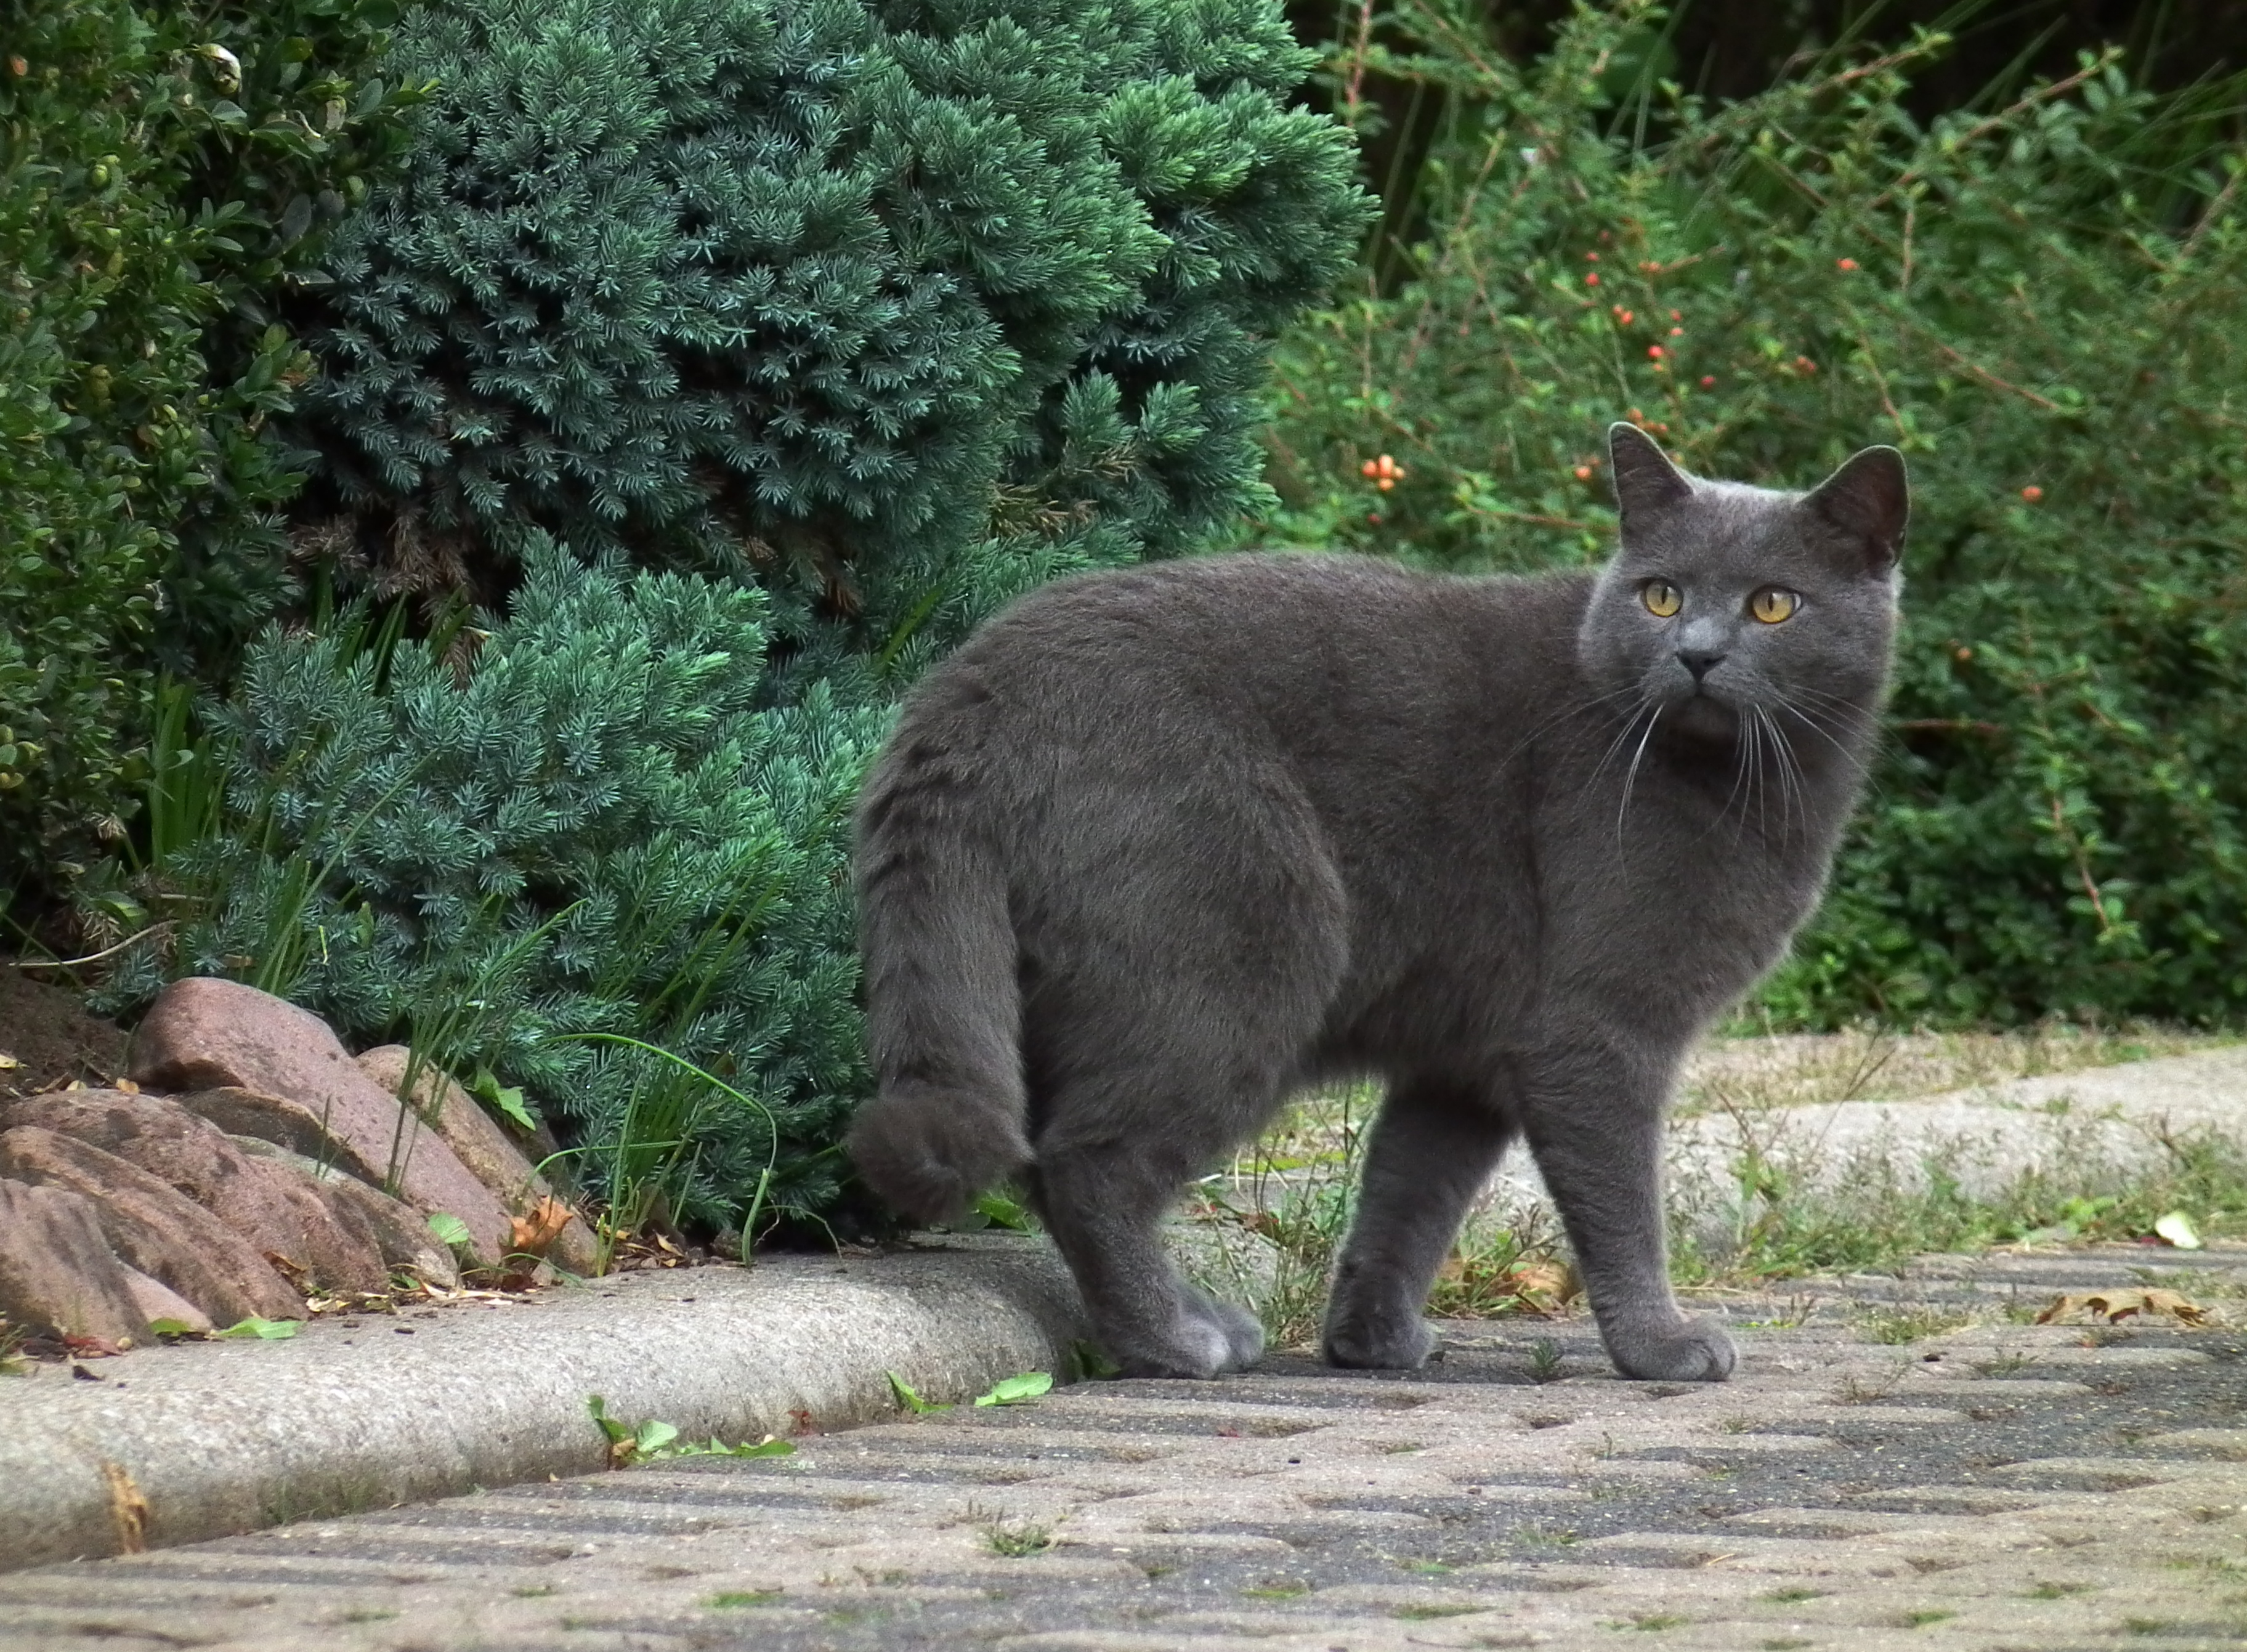 107943 download wallpaper Animals, Chartreuse, Cat, Breed, Grey, Stroll screensavers and pictures for free